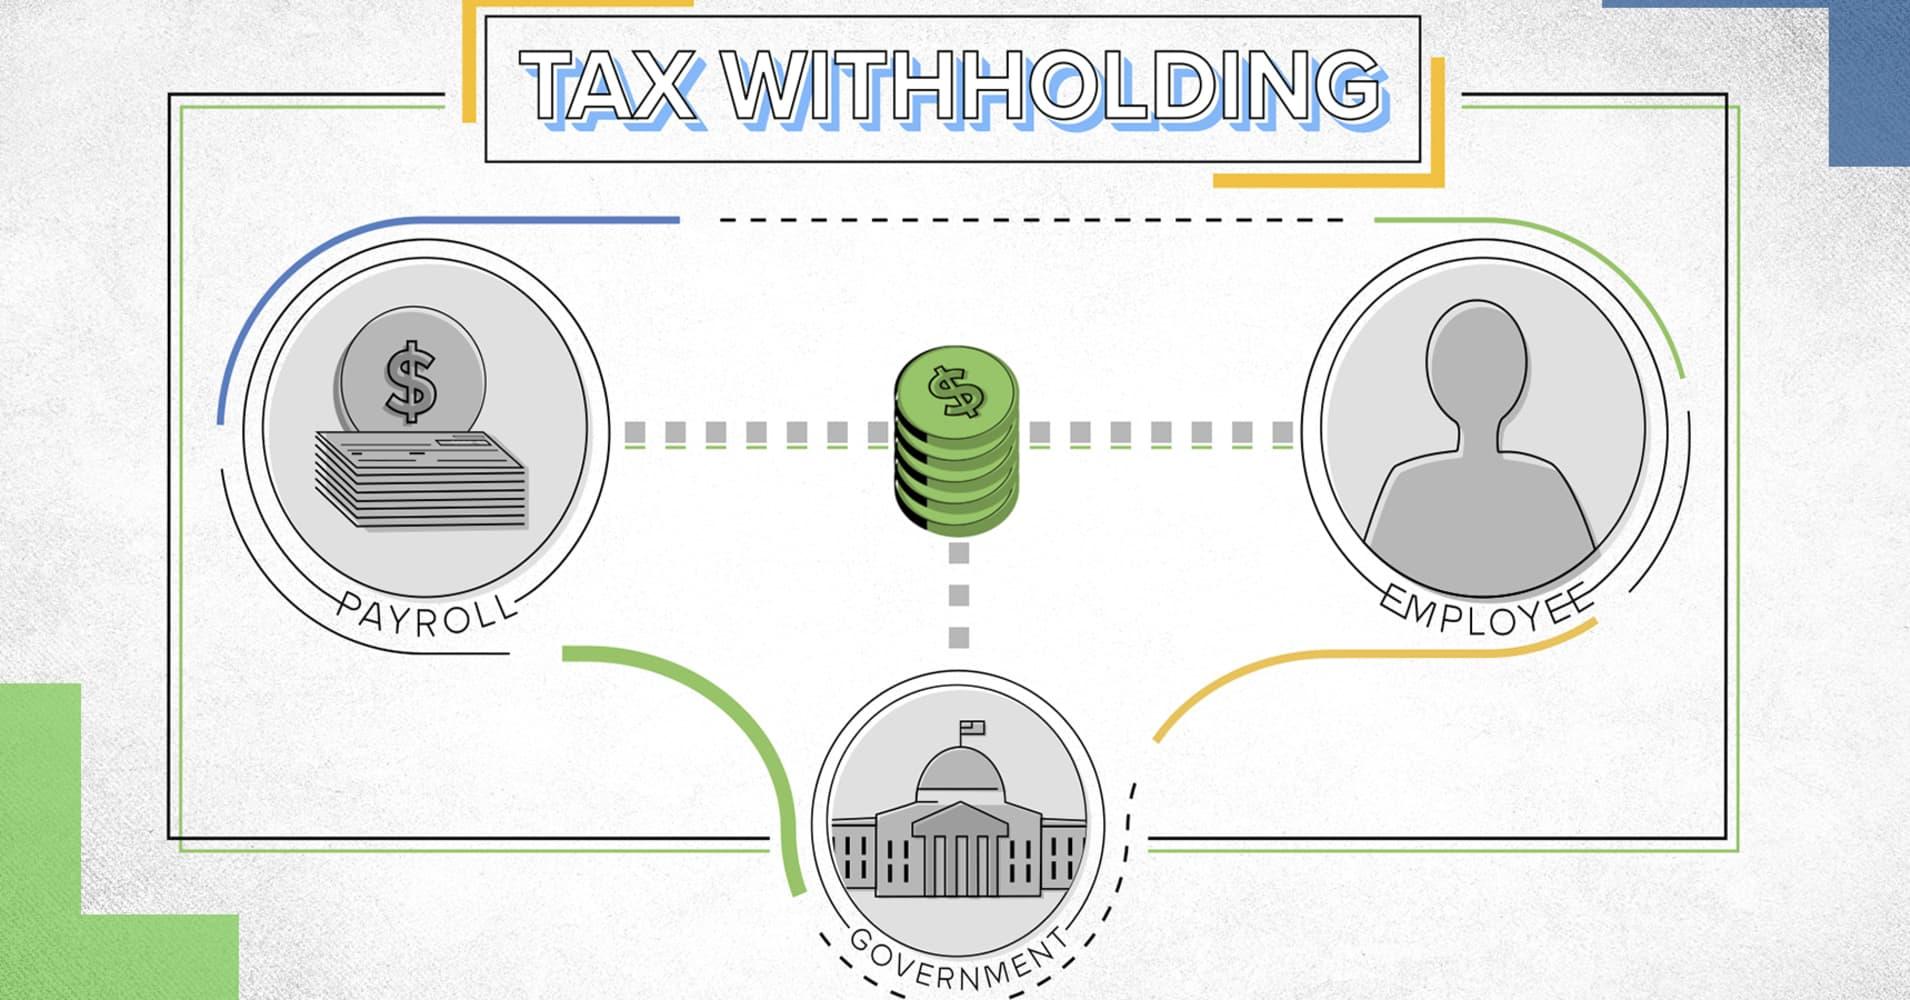 Tax withholding – what it is and how it affects your take-home pay